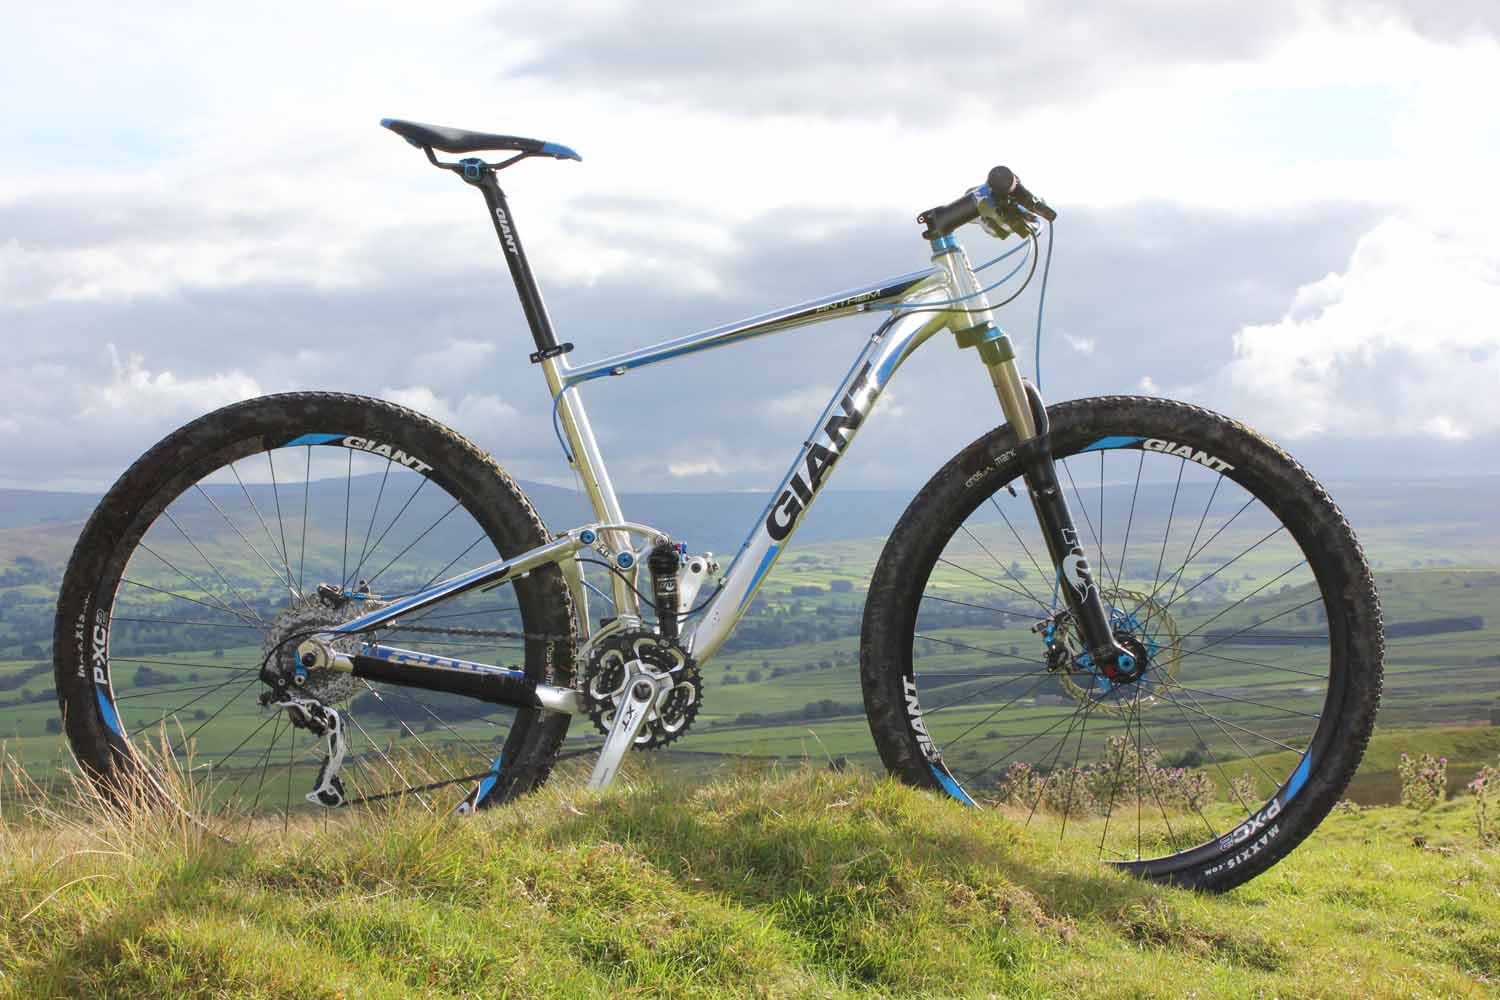 34a8b2c1f04 Giant Anthem X 29er 2011 review - The Bike List